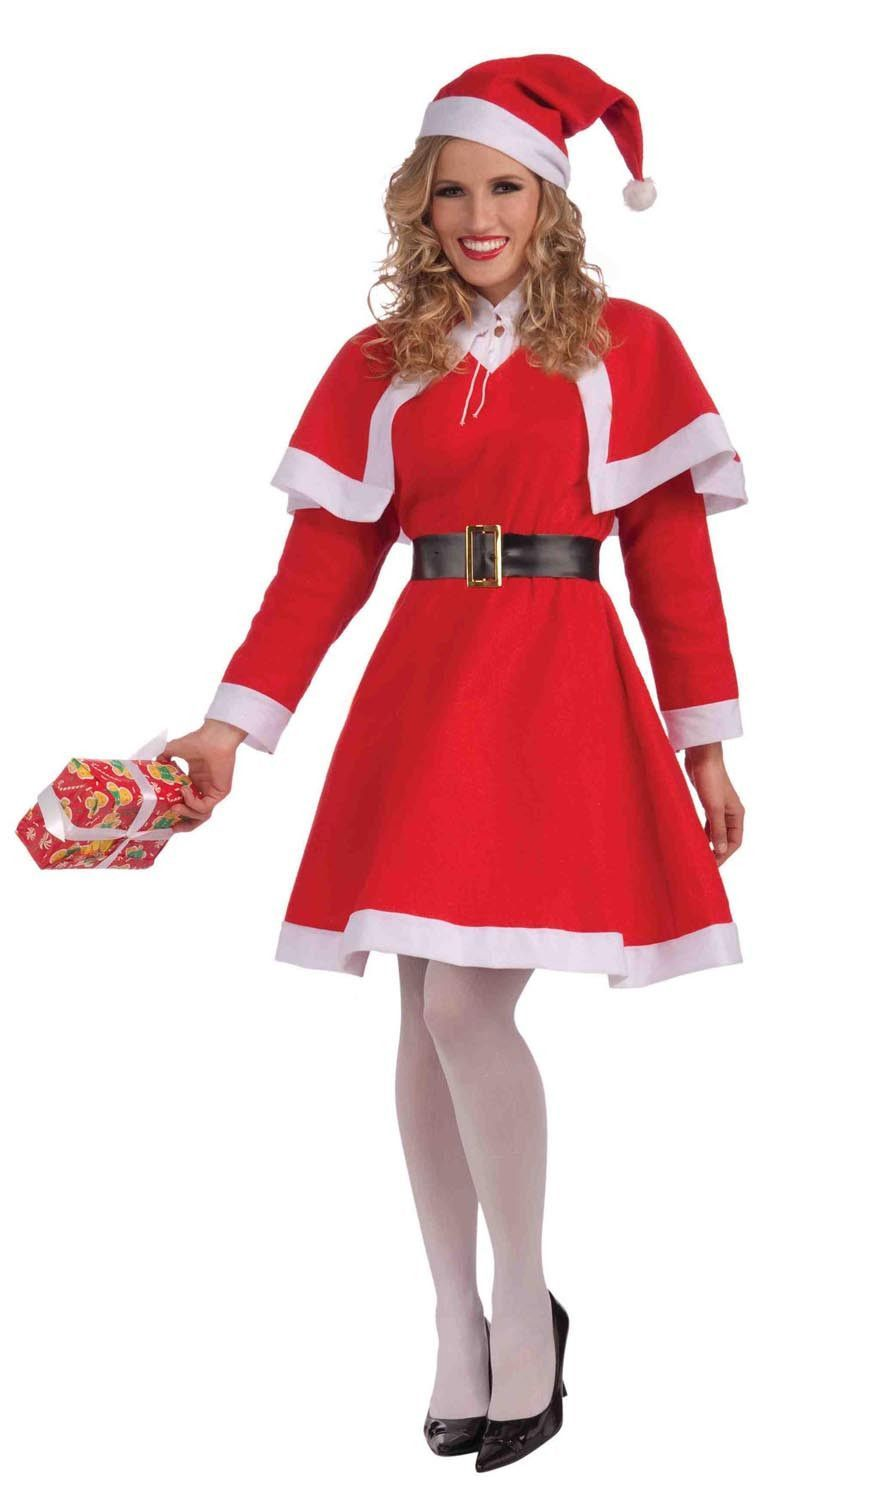 Mrs Santa Claus Adult Female Christmas Costume -6460